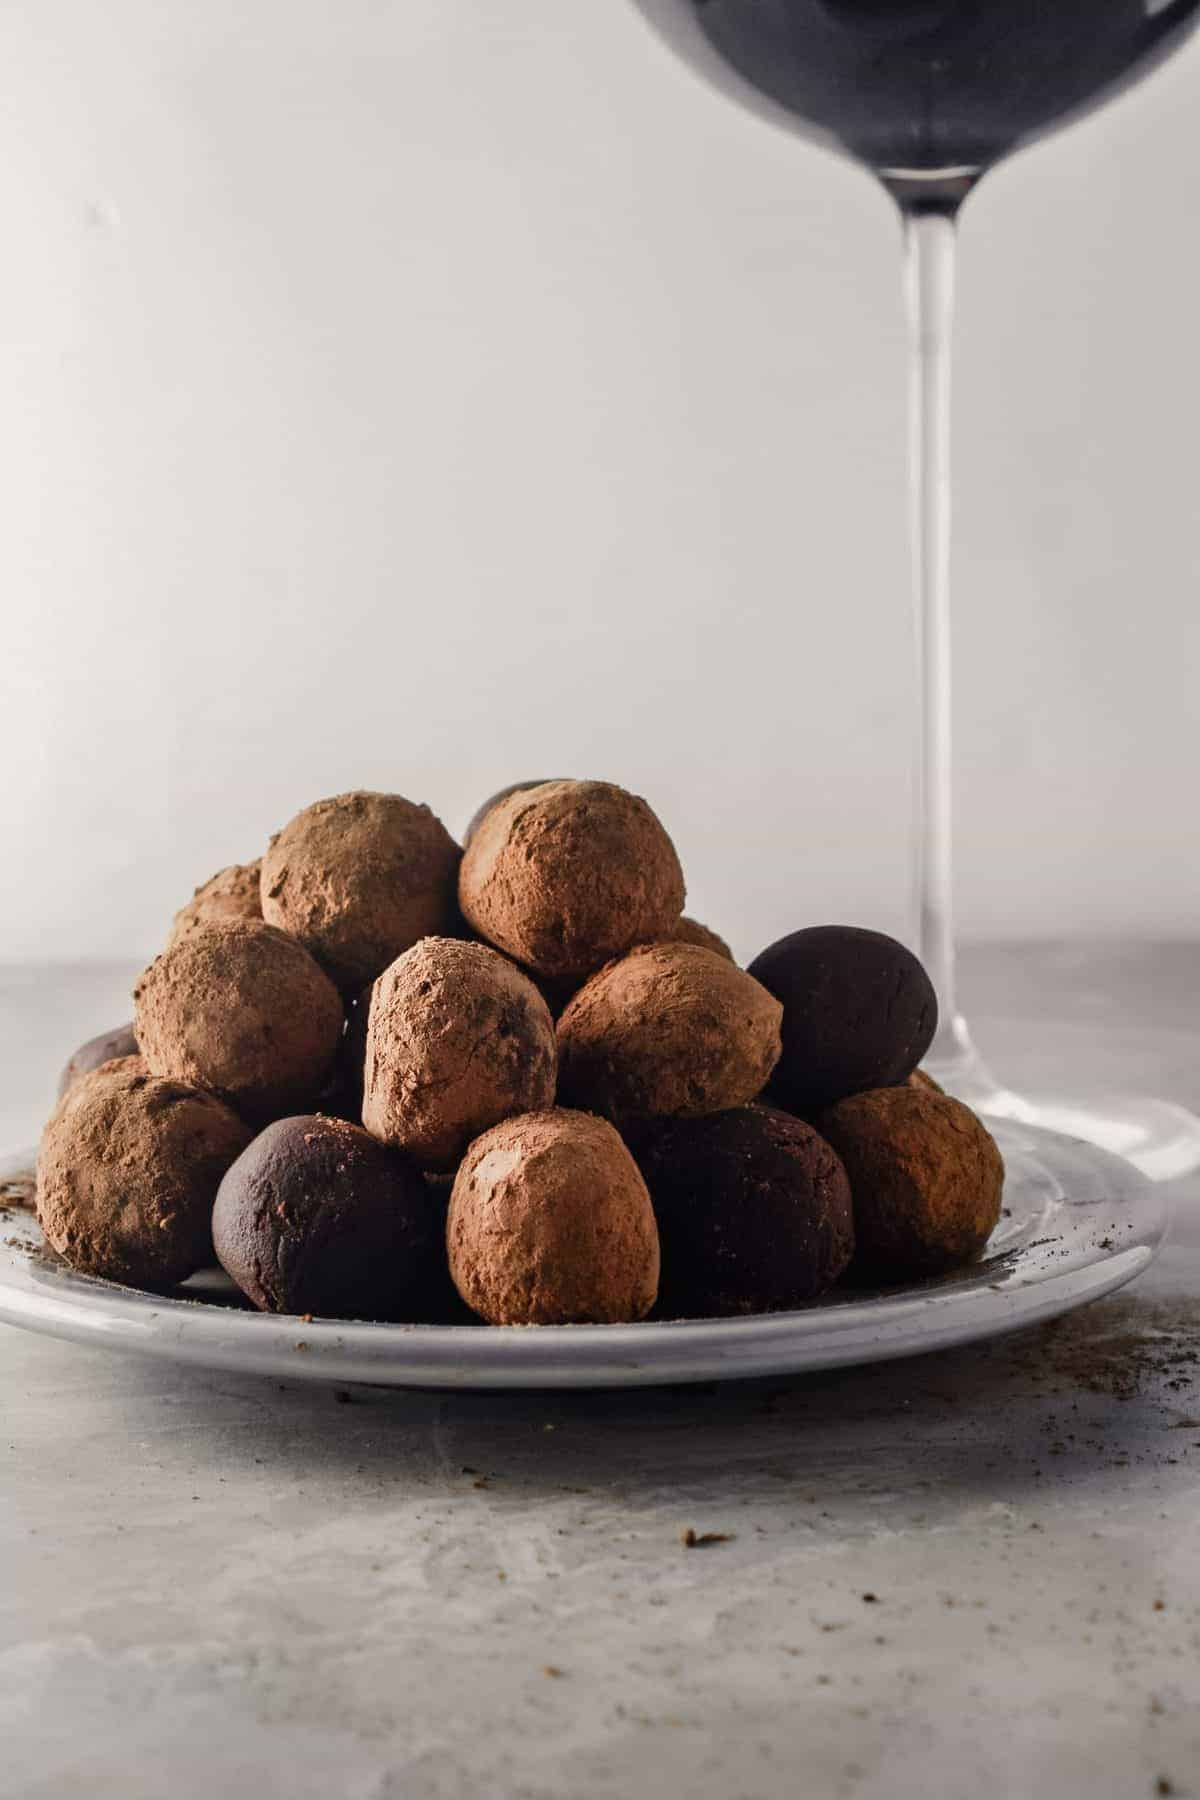 A plateful of truffles made with dark chocolate and red wine.